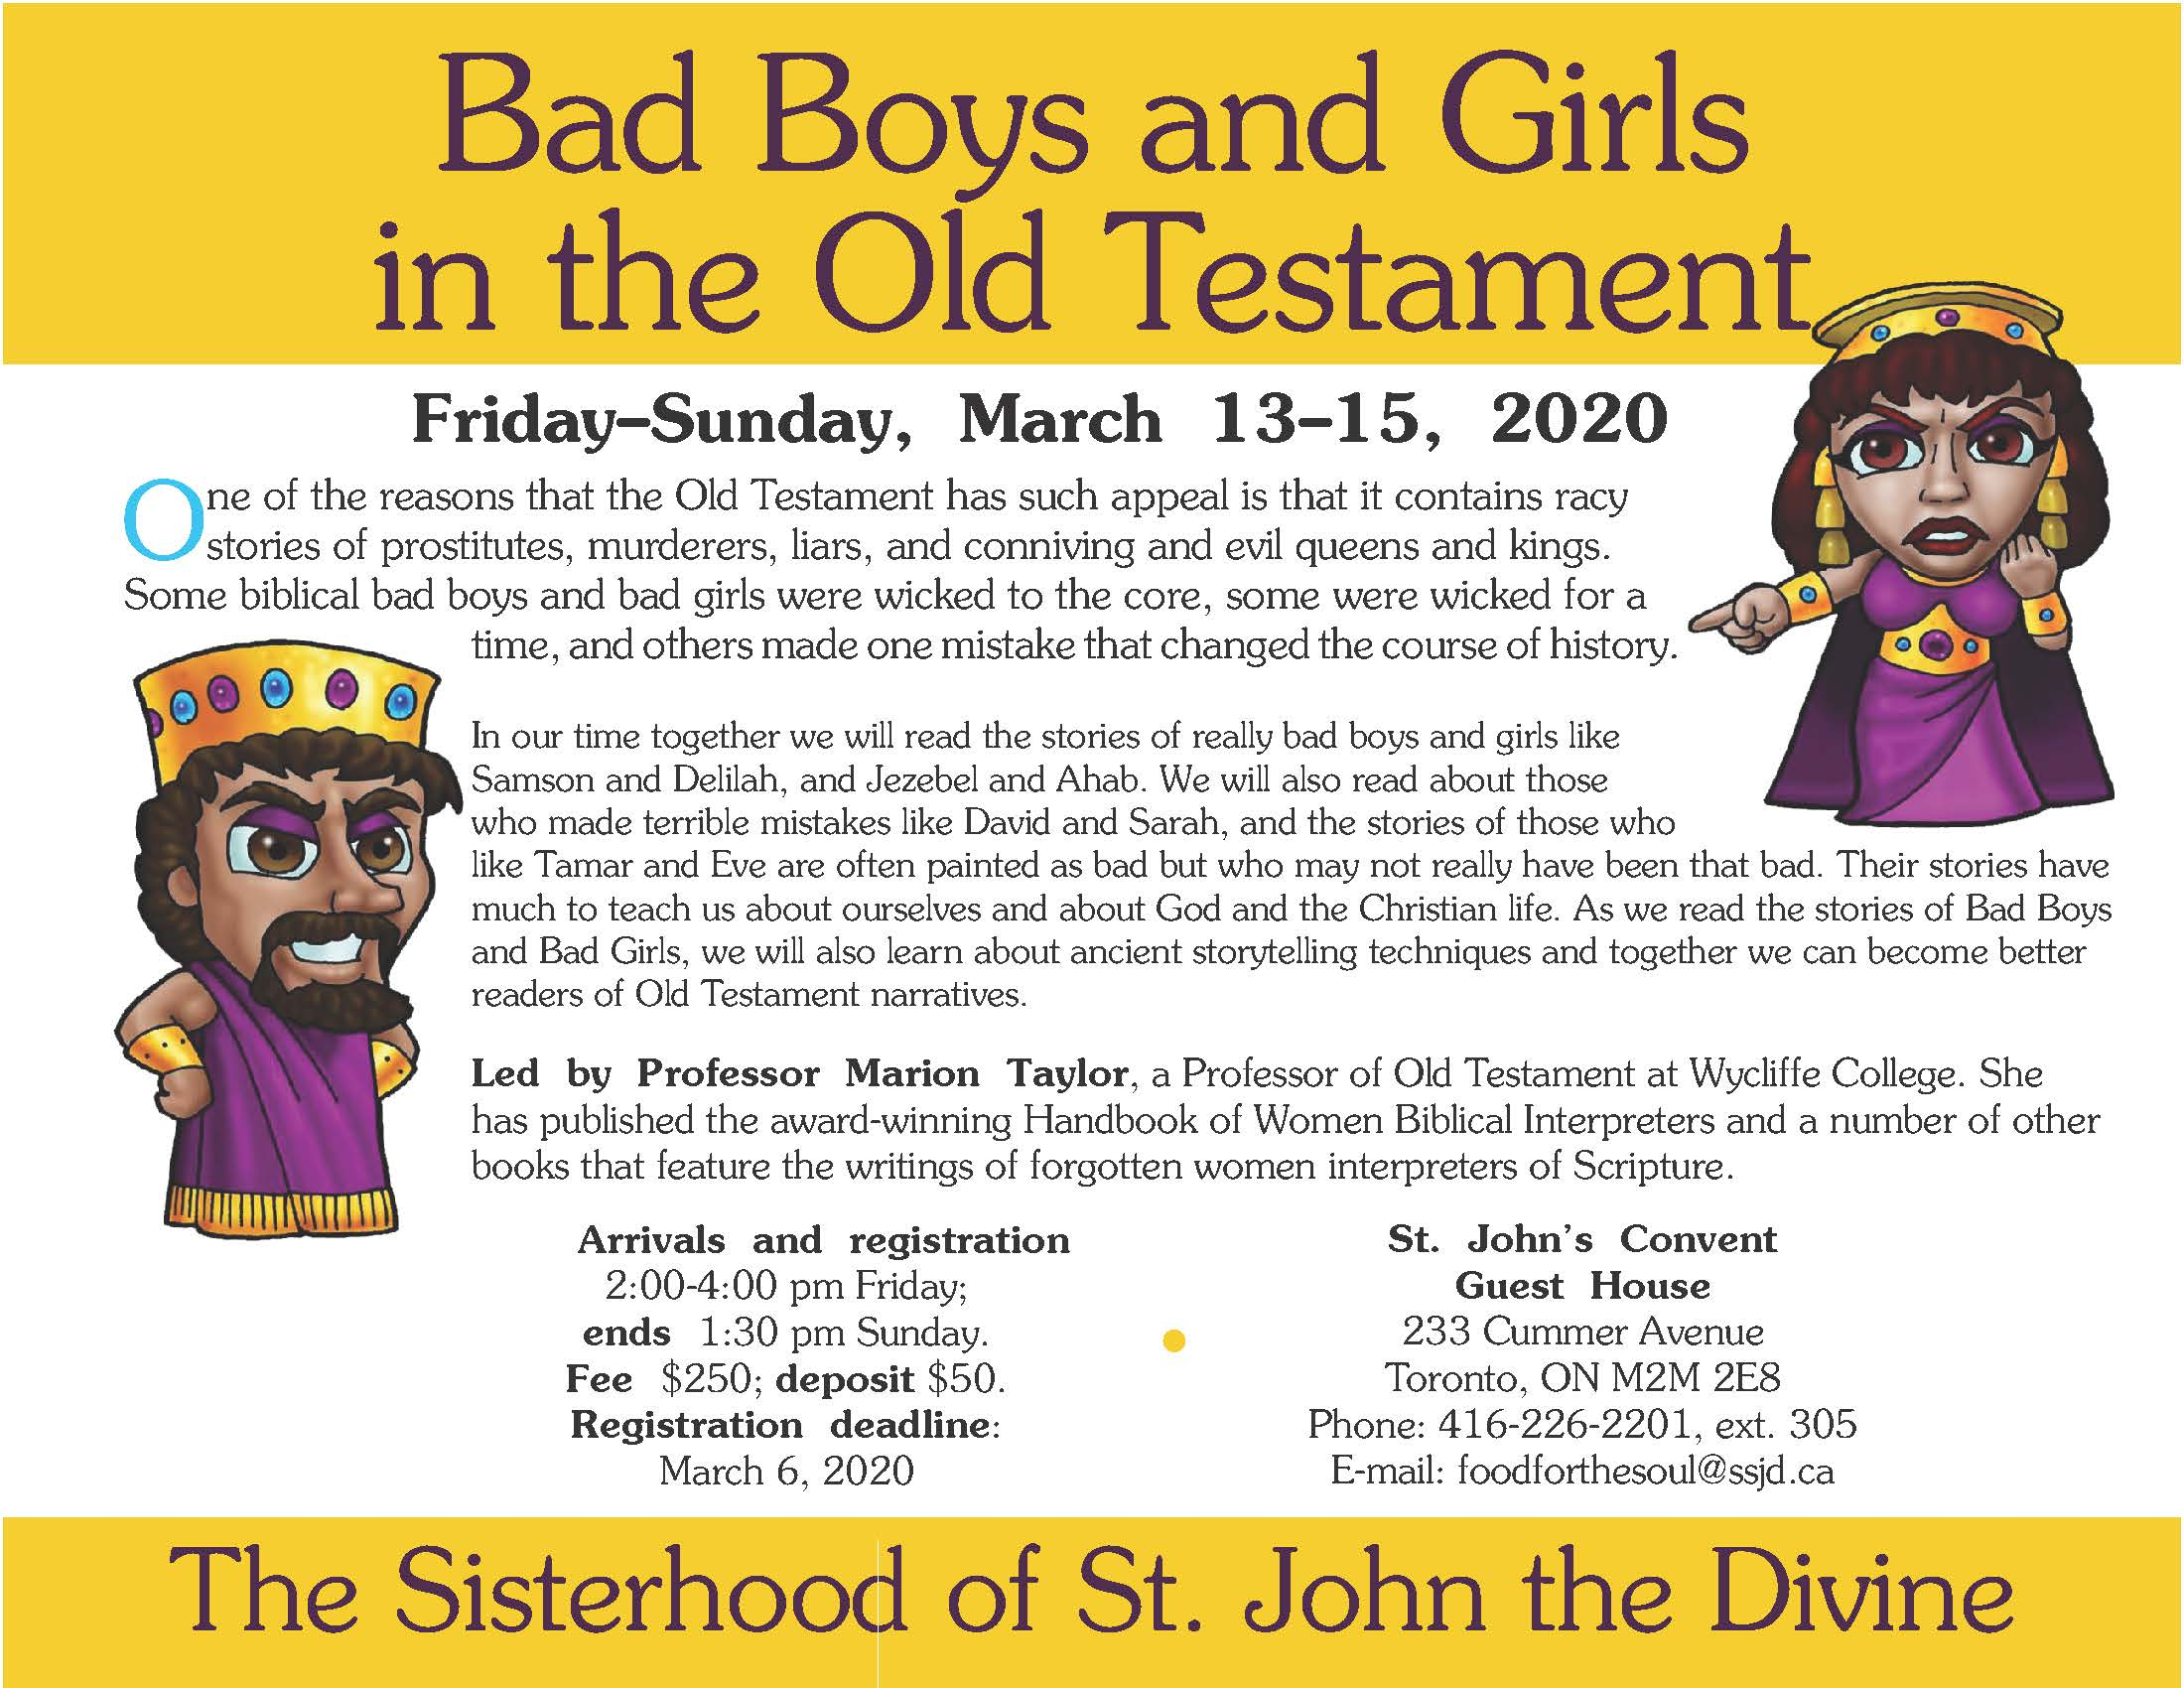 Bad Boys and Girls of the Old Testament